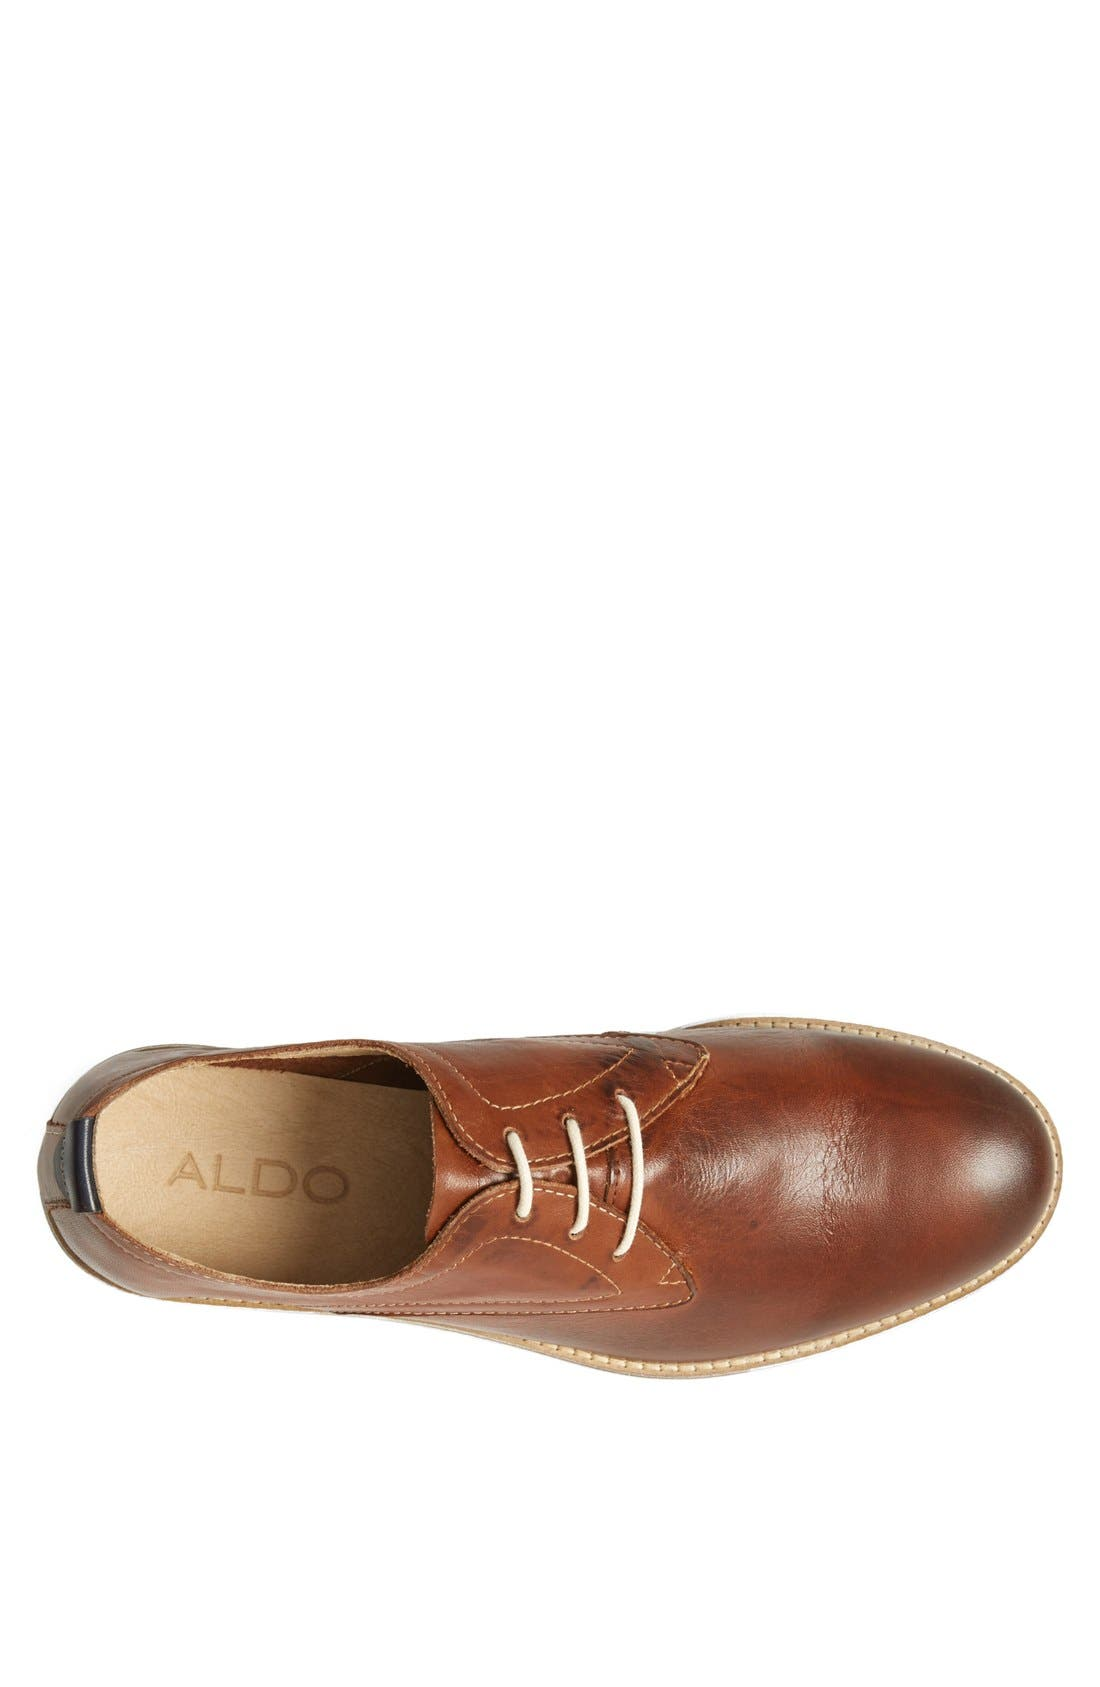 Alternate Image 3  - ALDO 'Bovell' Plain Toe Derby (Men)